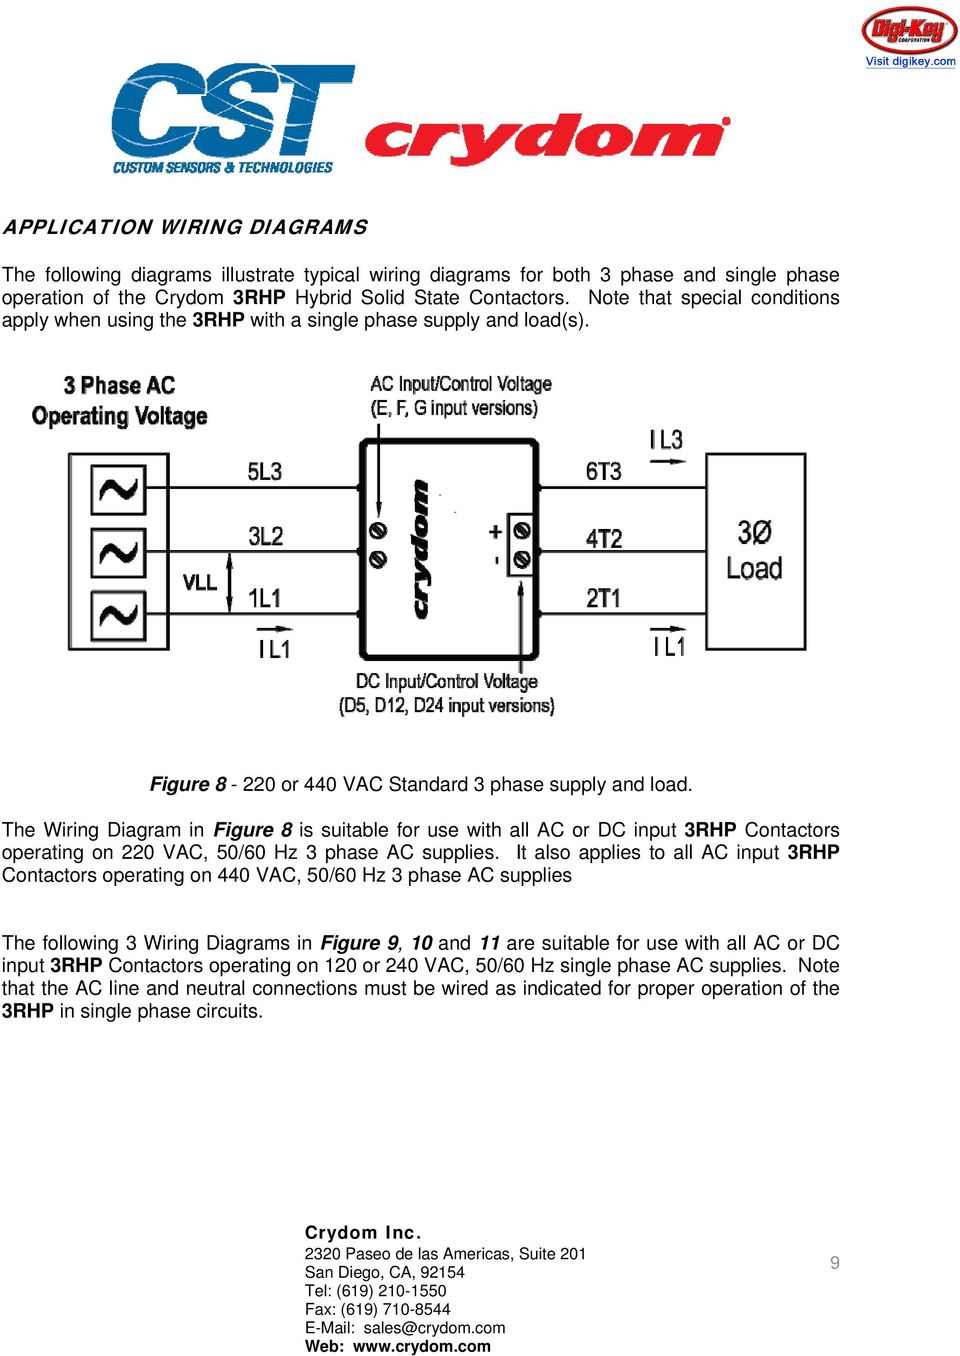 The Wiring Diagram in Figure 8 is suitable for use with all AC or DC input 3RHP Contactors operating on 220 VAC, 50/60 Hz 3 phase AC supplies.